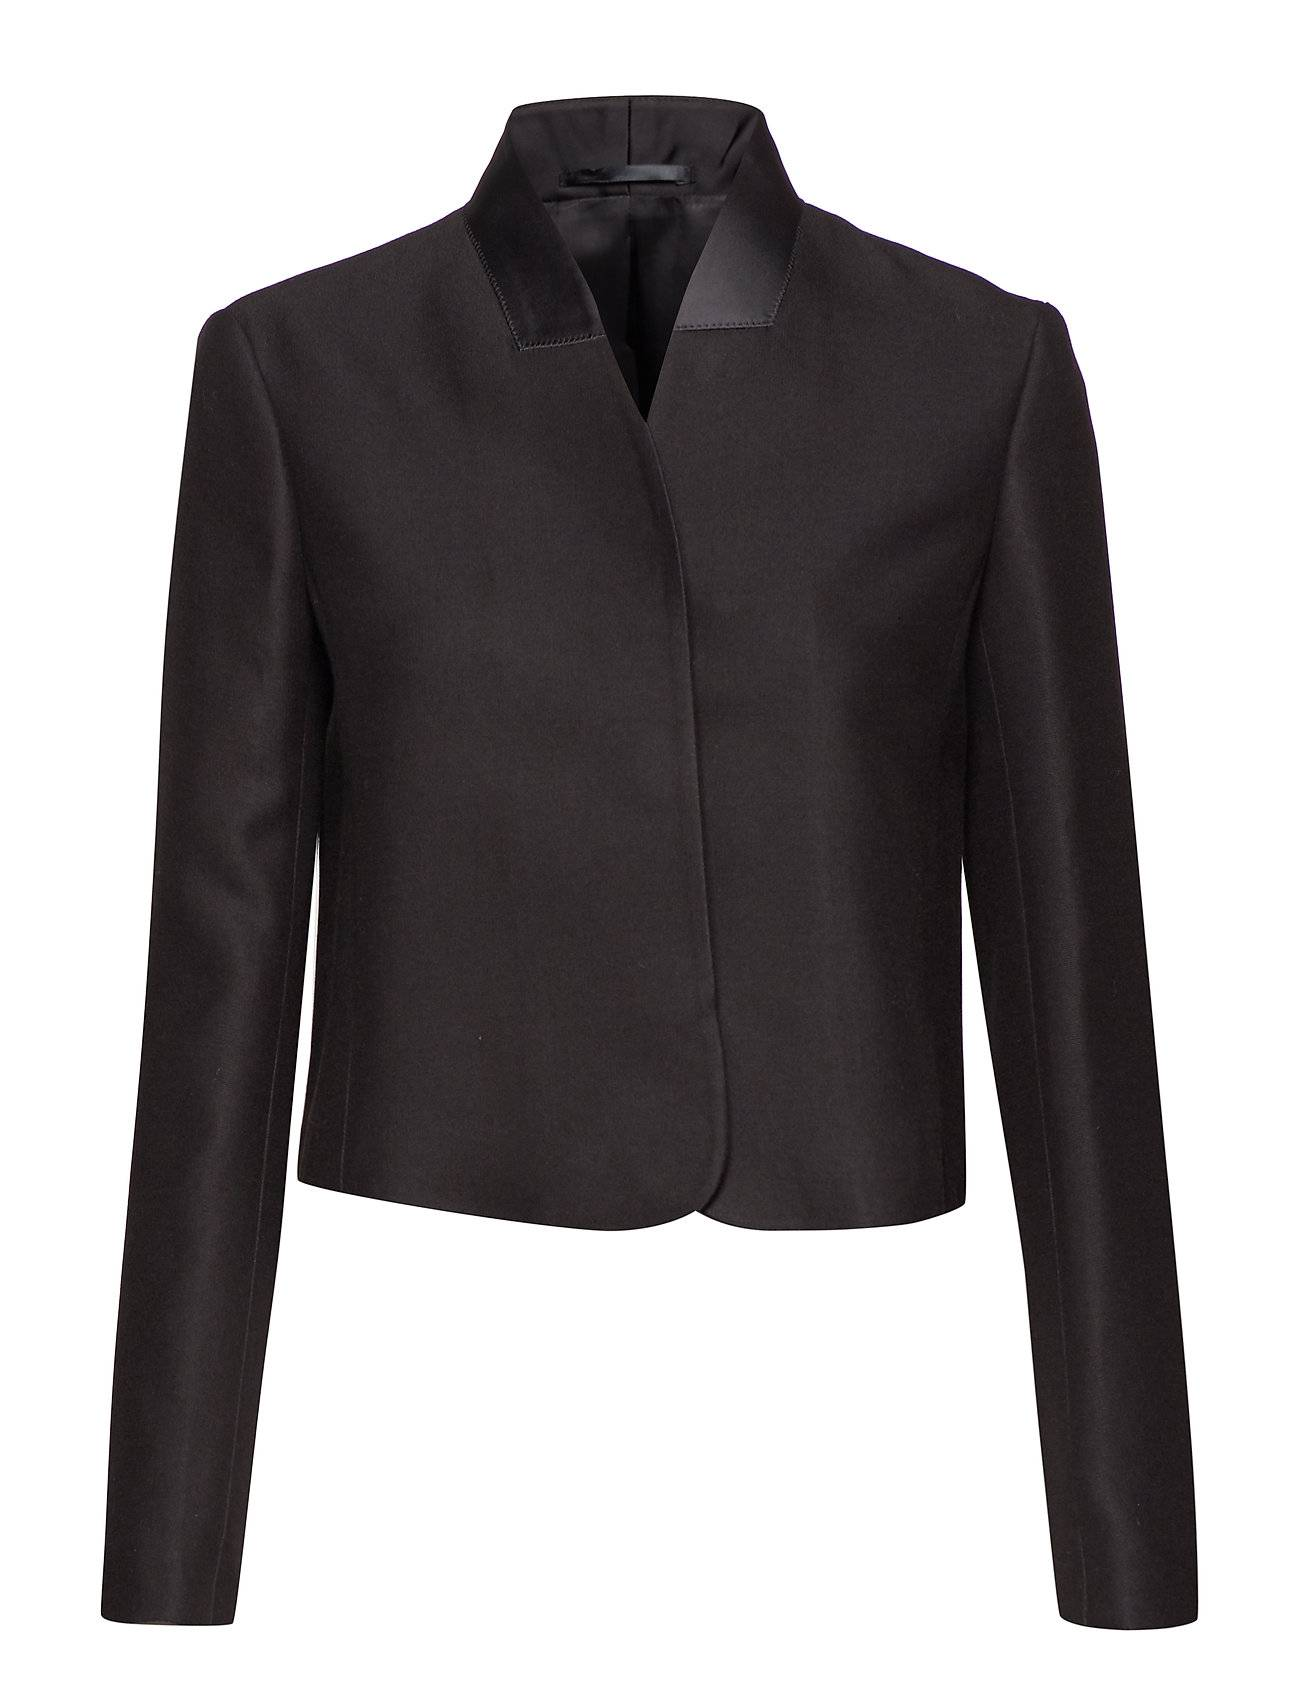 Filippa K Short Blazer Jacket